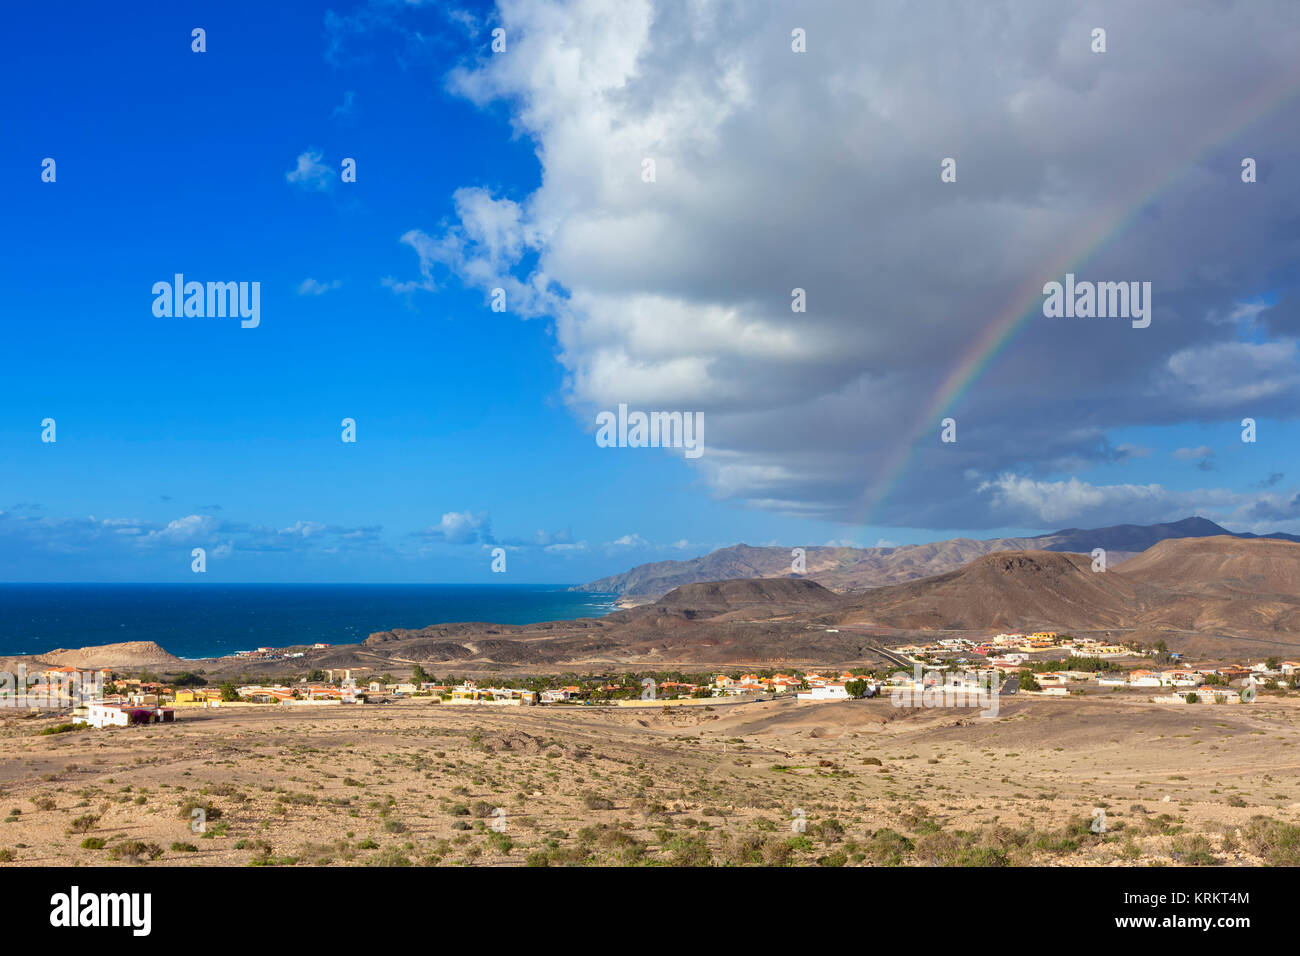 Impressing cloudscape and rainbow above the village of La Pared, Fuerteventura - Stock Image